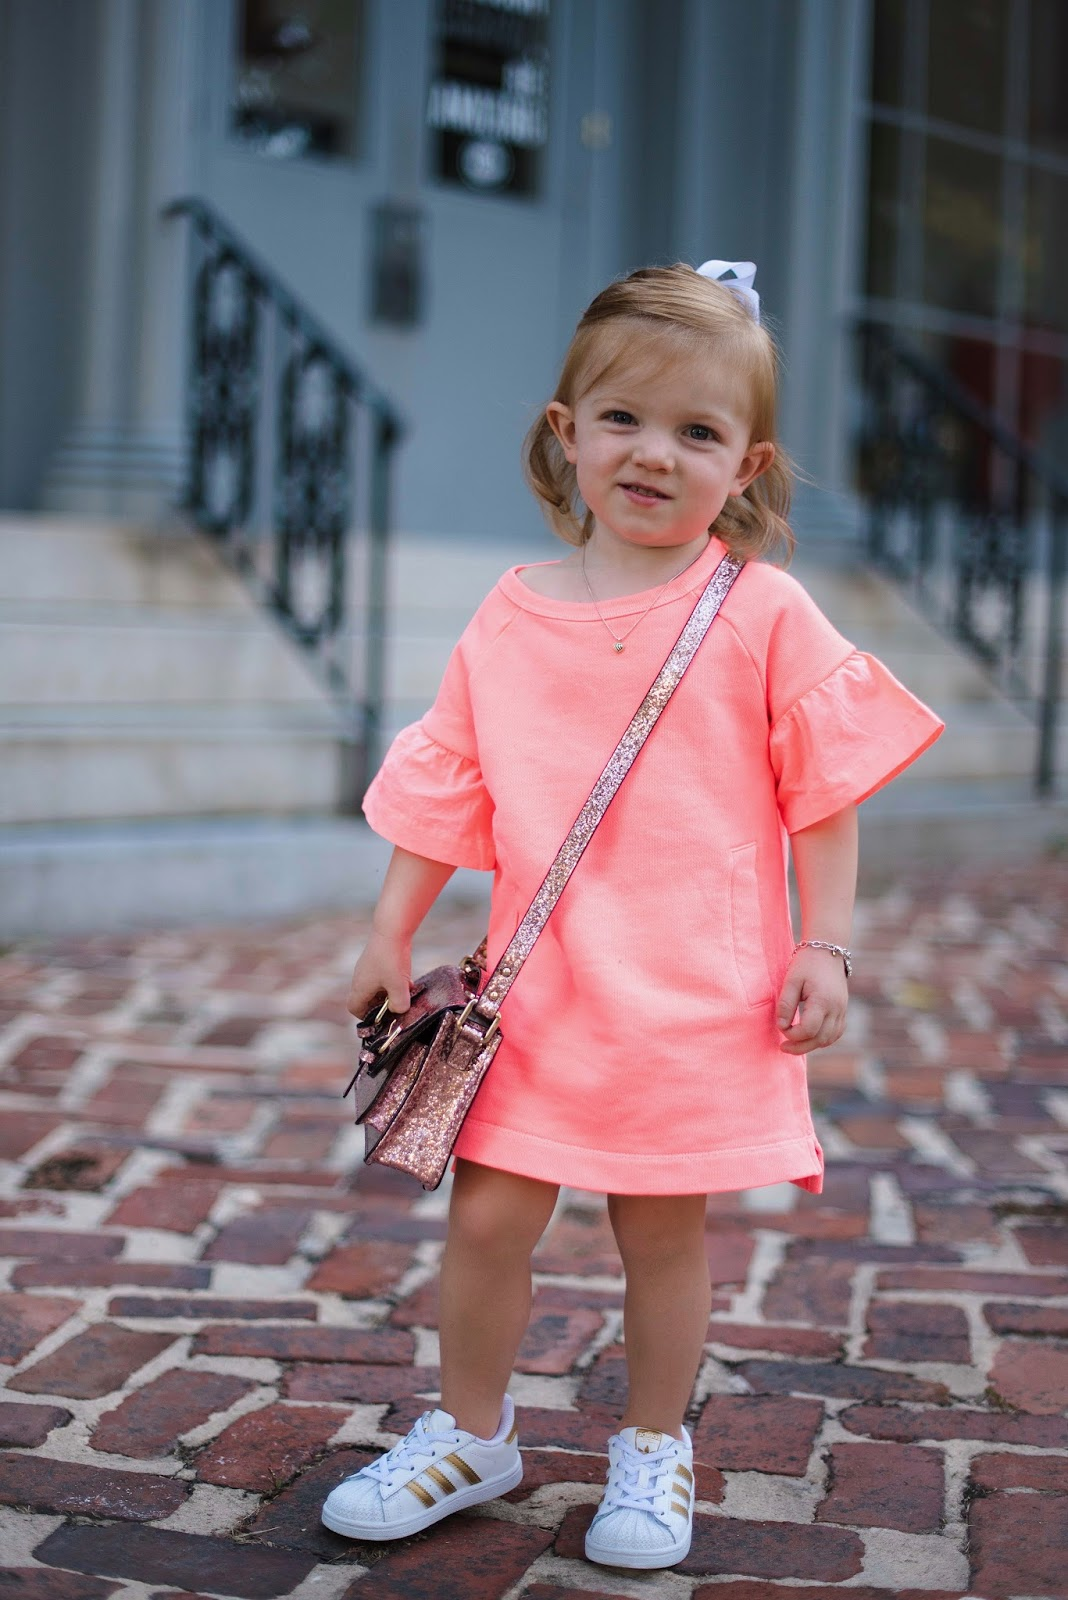 J.Crew Kids - Something Delightful Blog